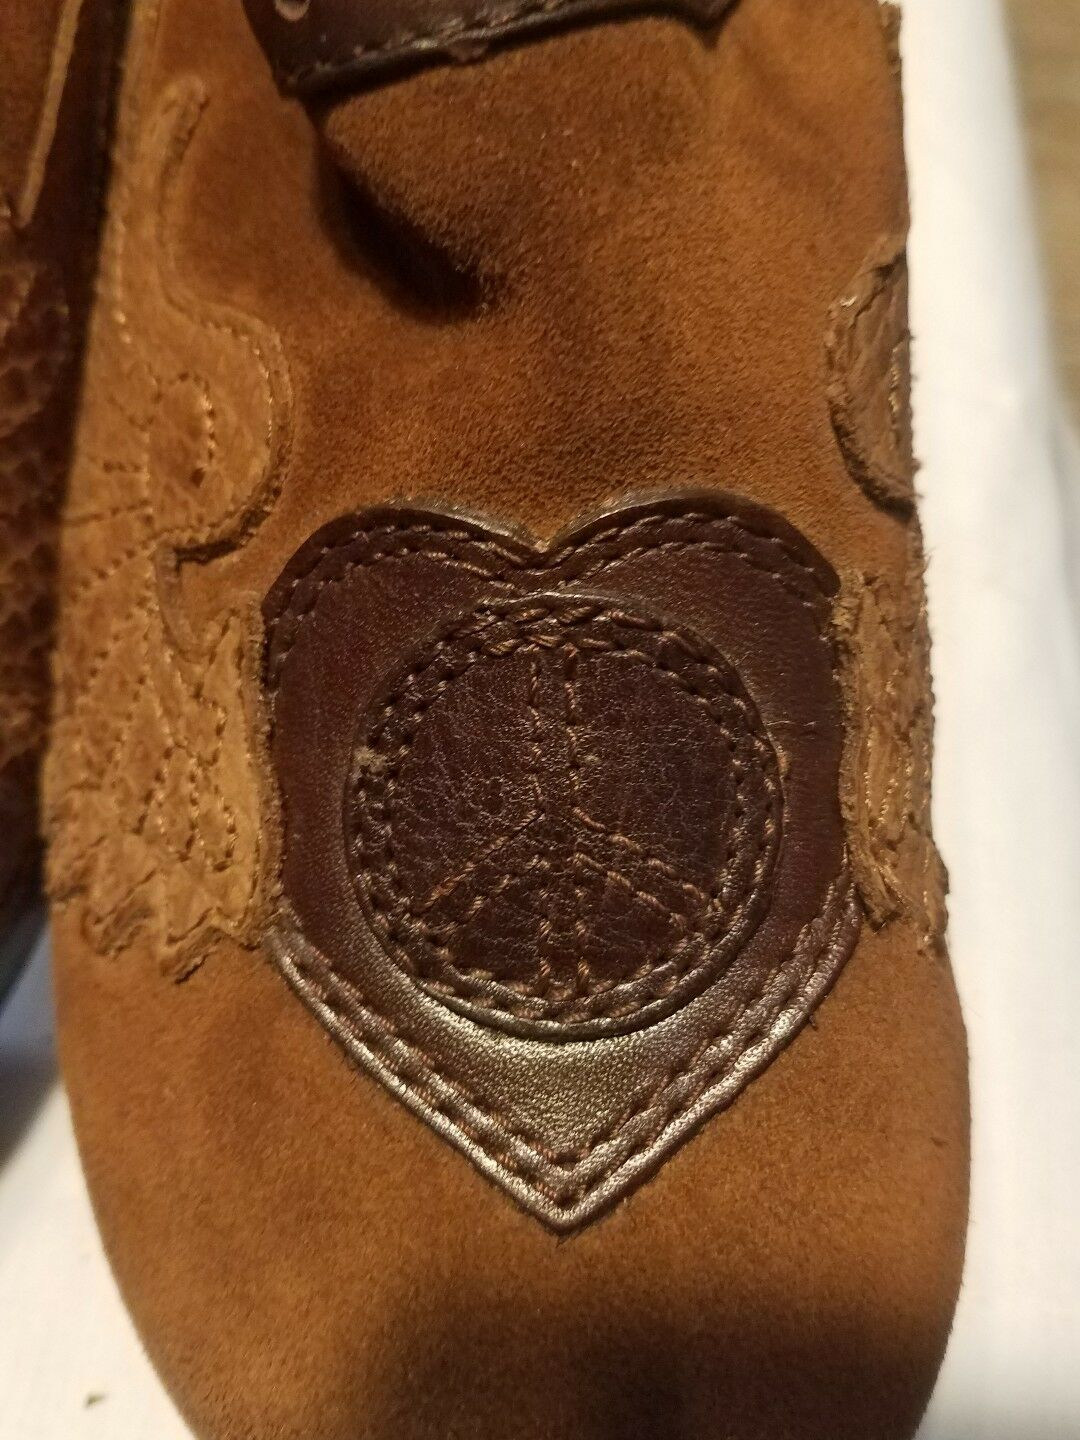 Lucky Donna LK-fable Mule Wedge Shoe brown brown brown leather Size 7.5 M   new in box 476280